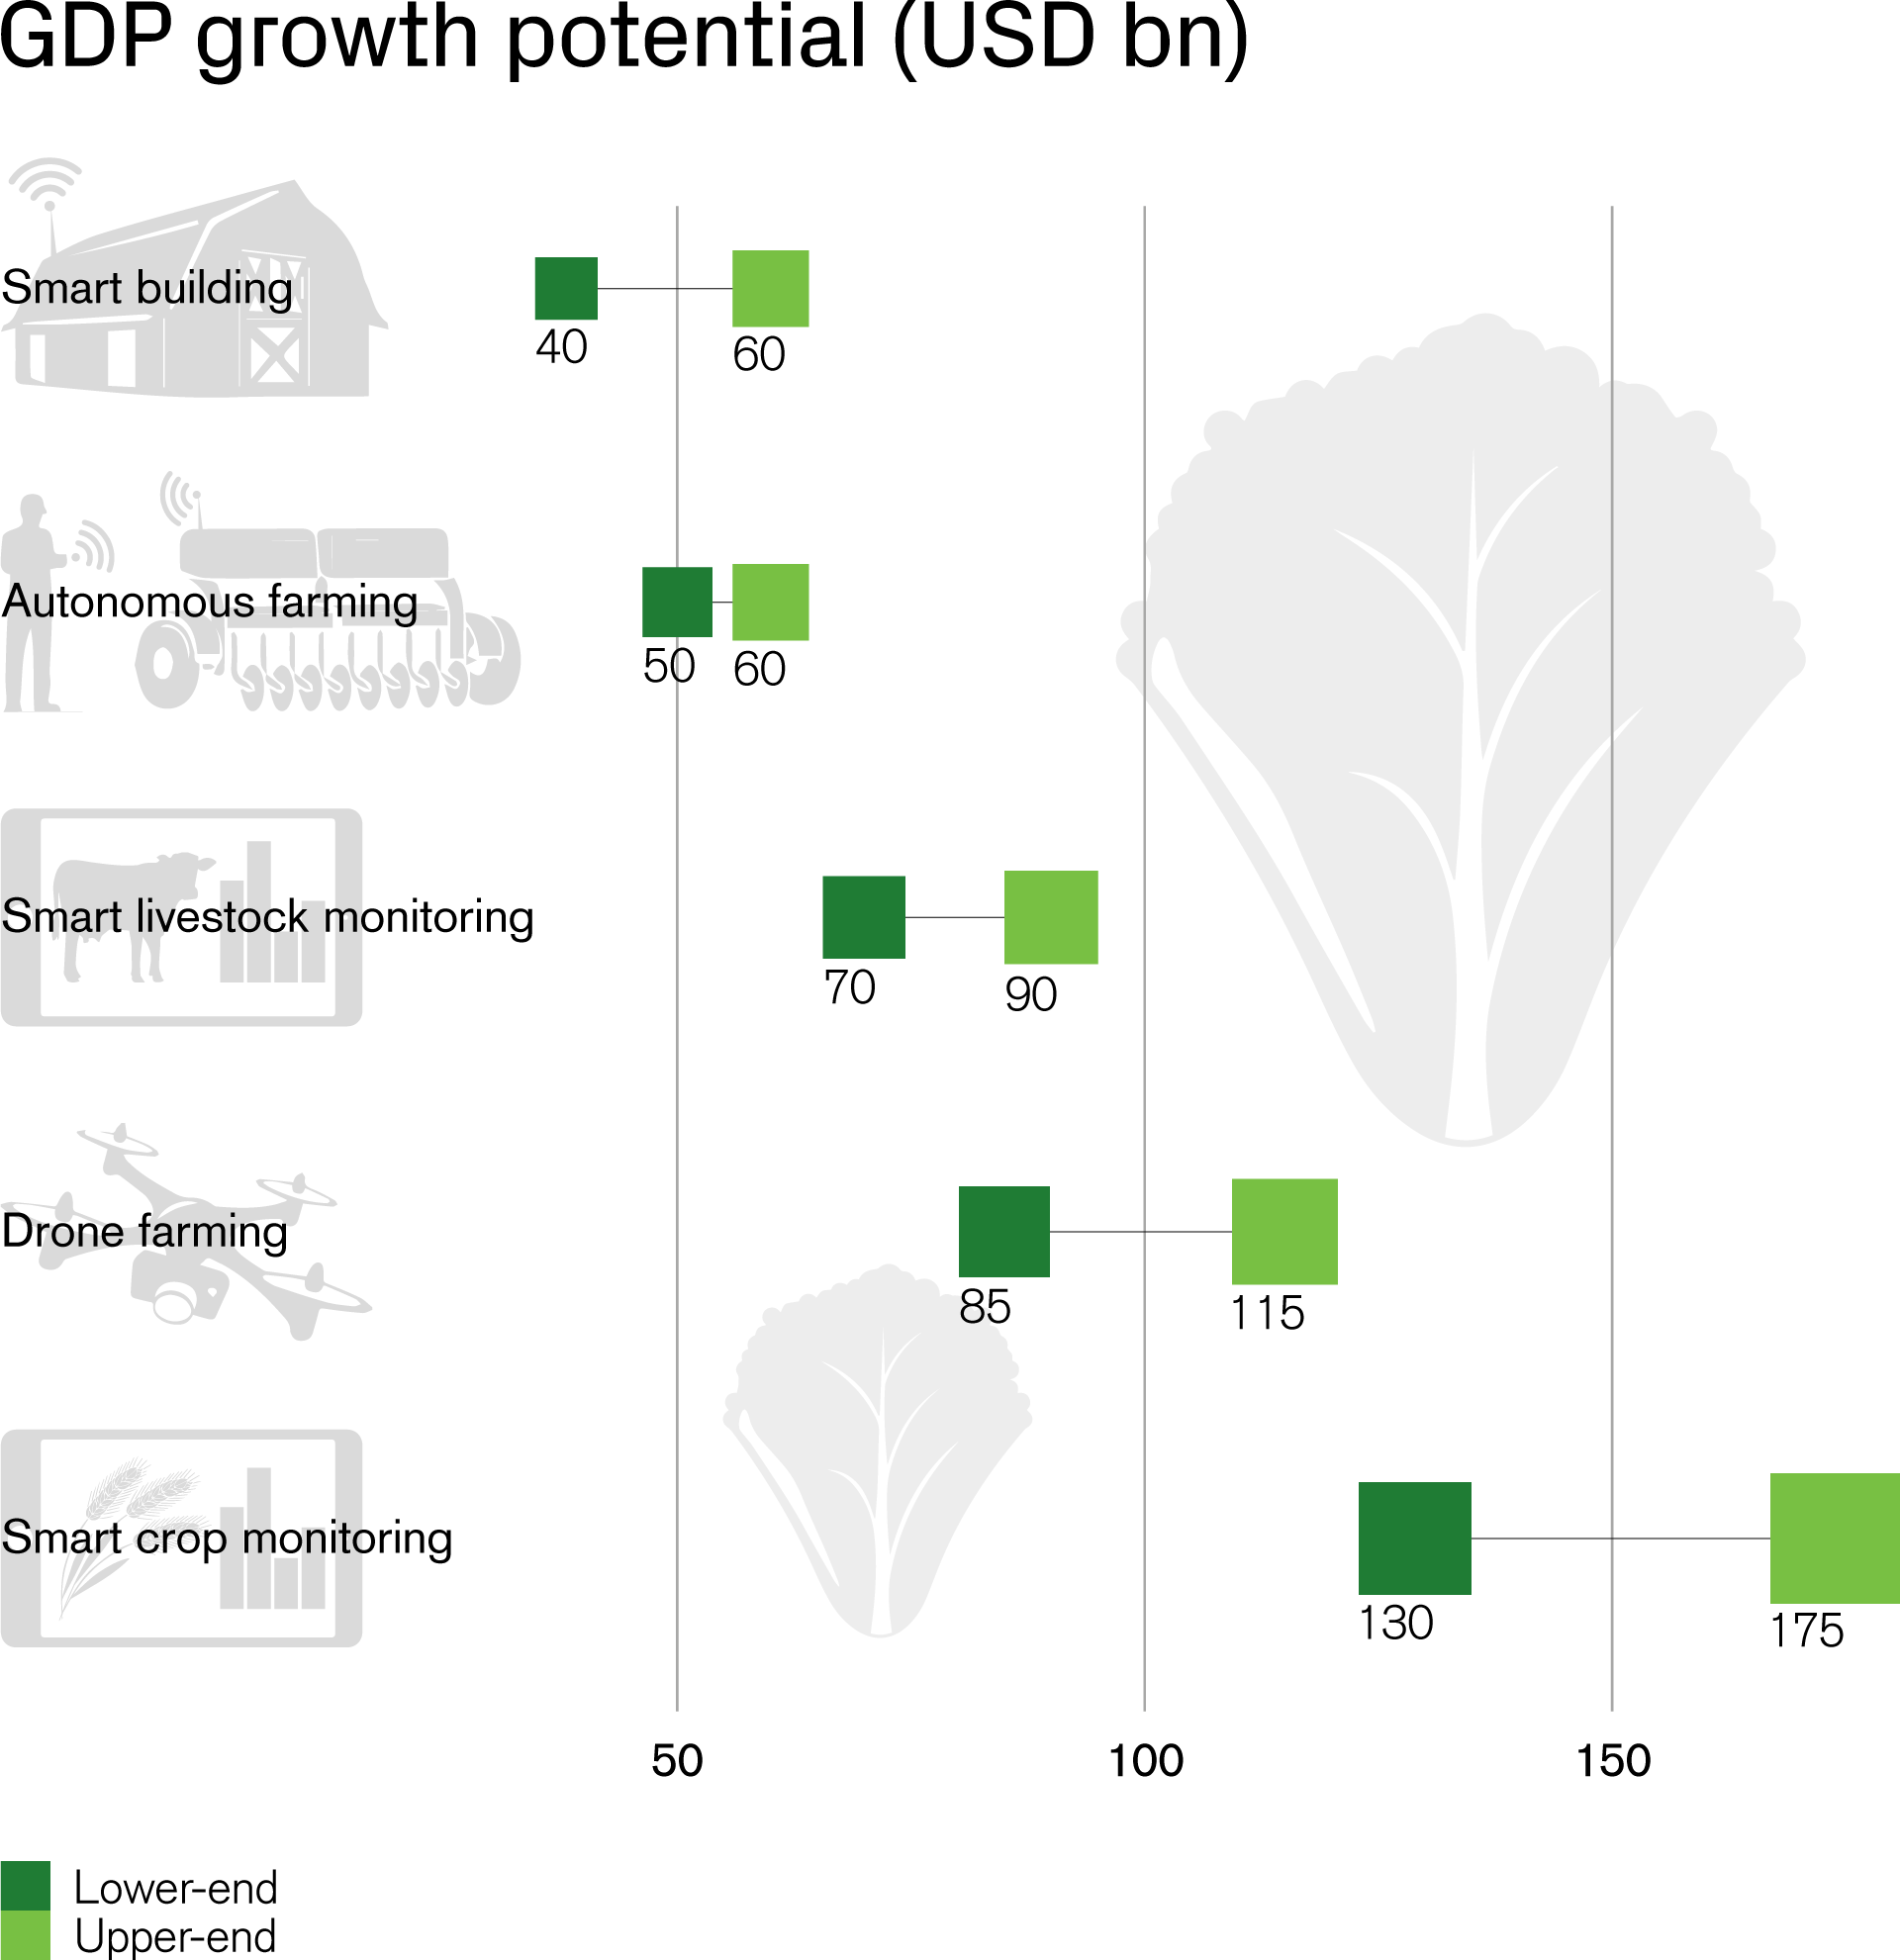 GDP growth potential (USD bn)